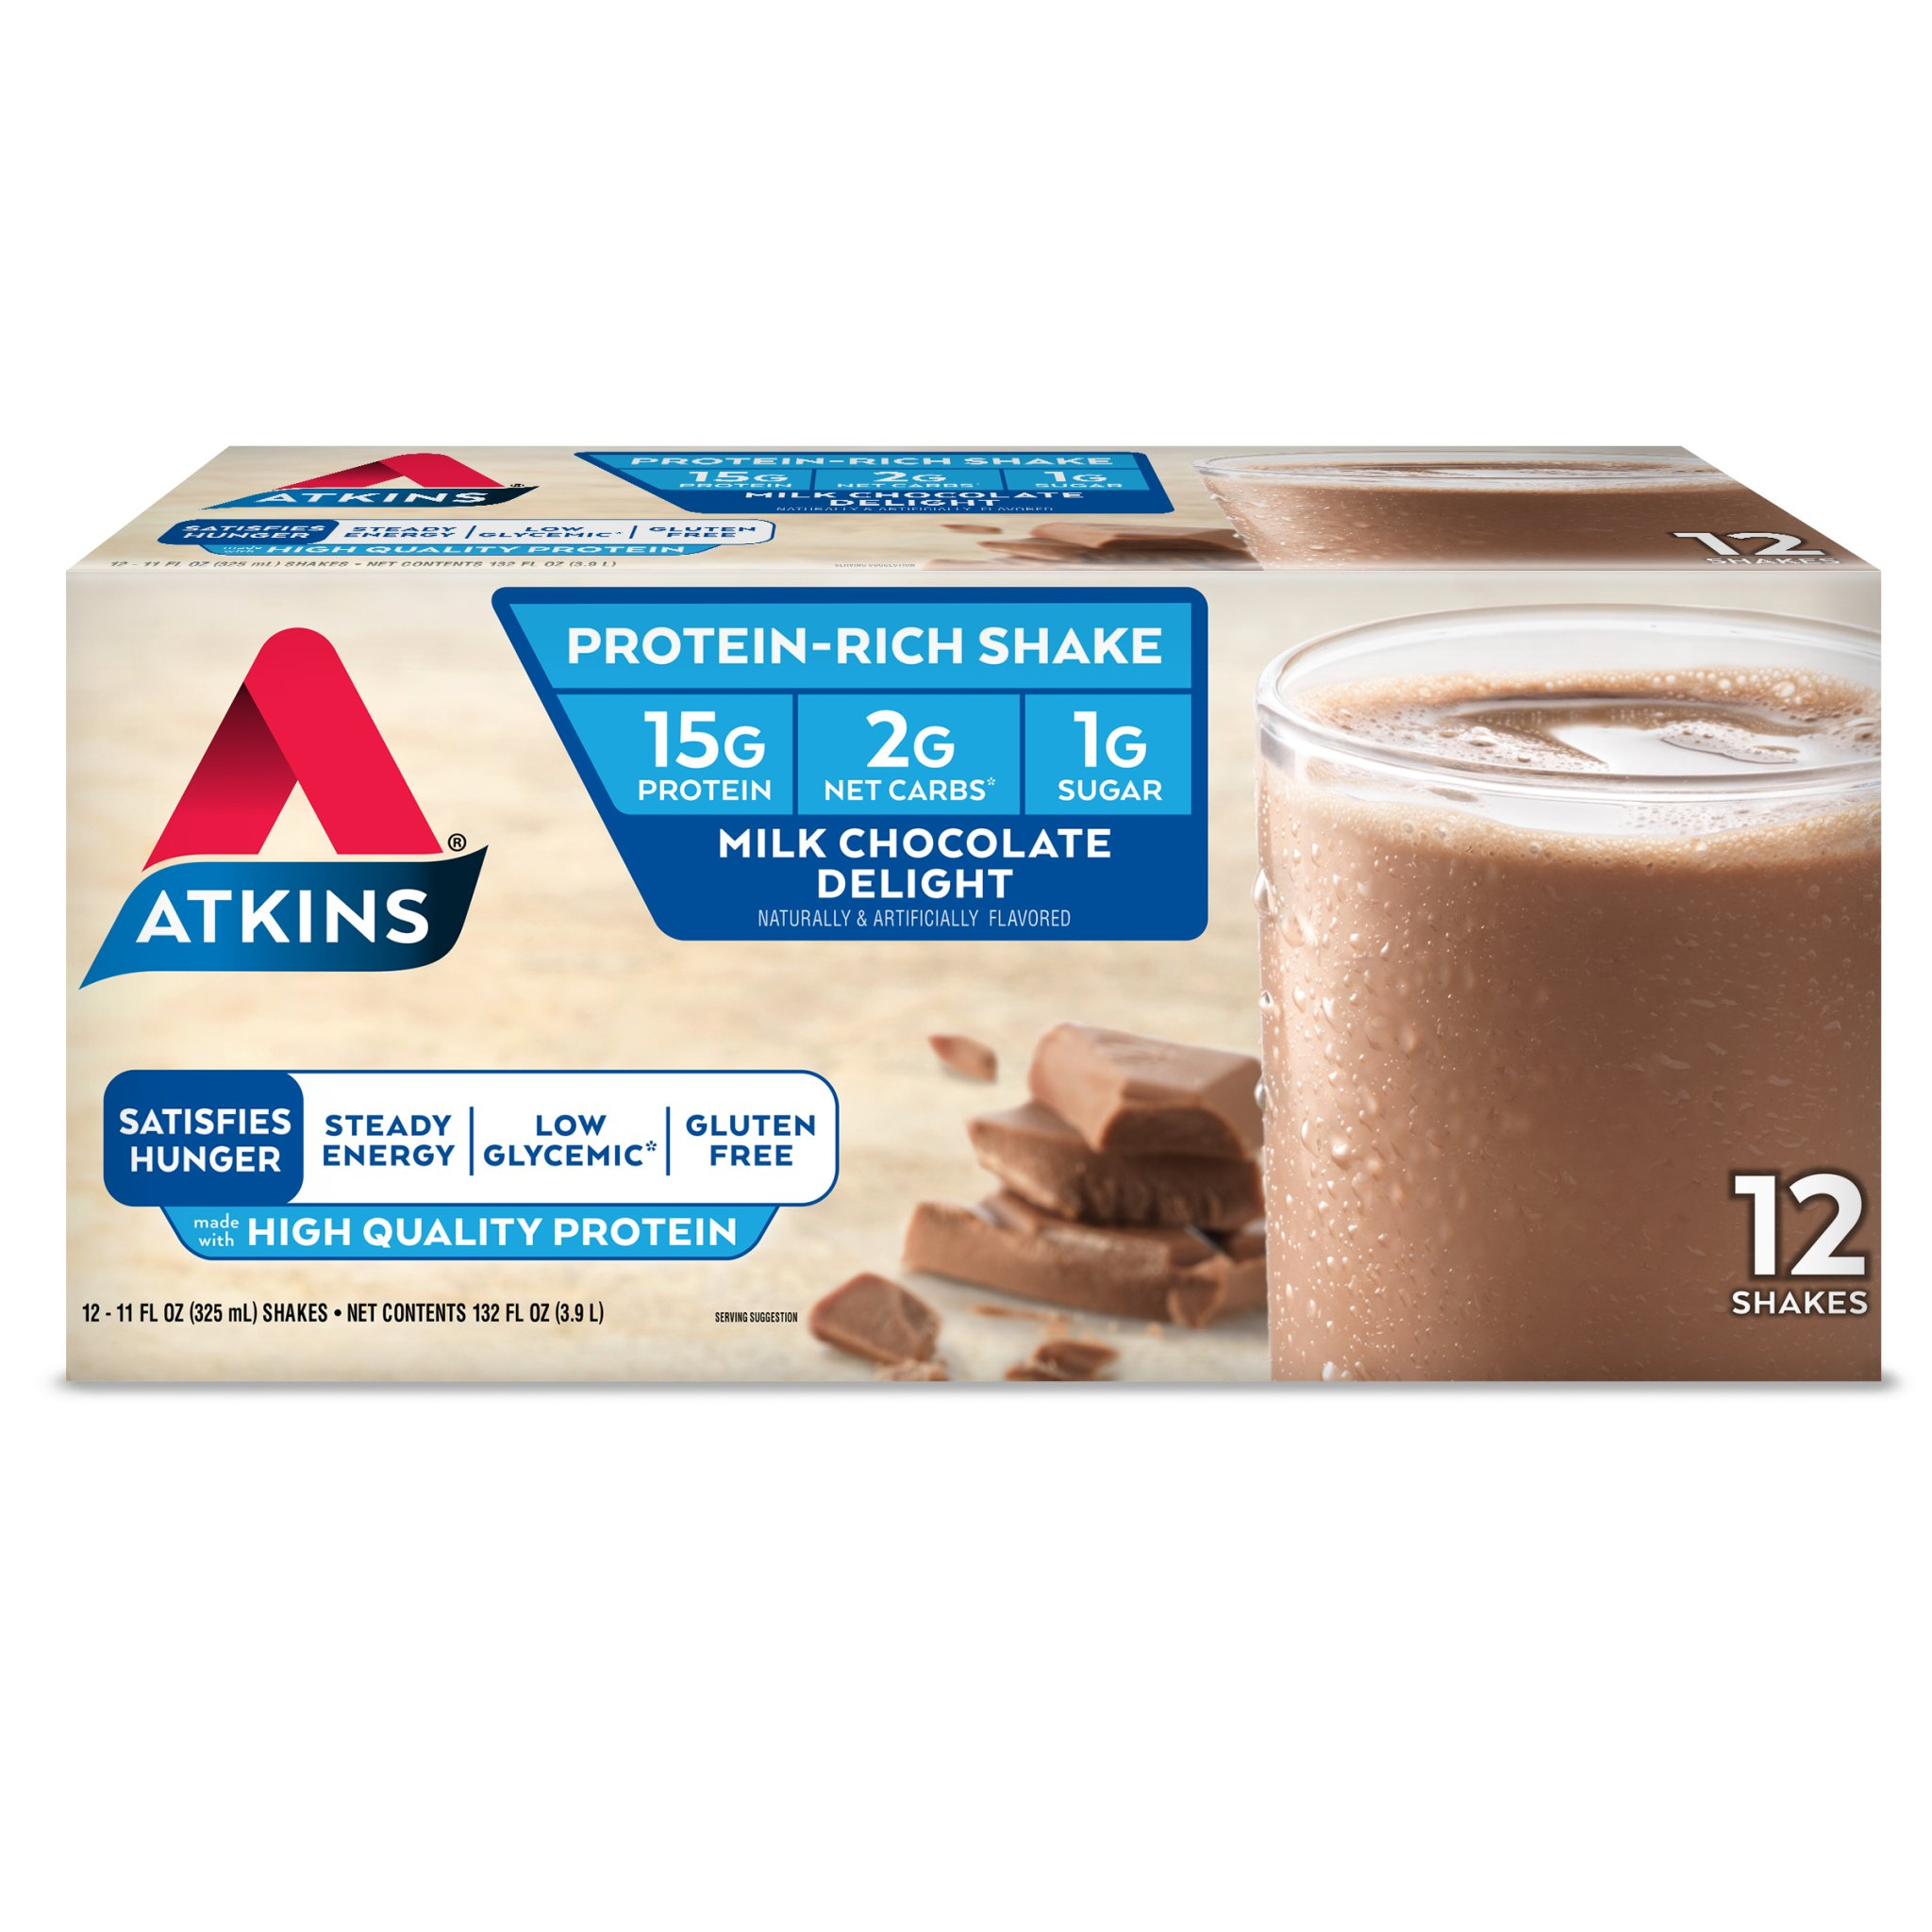 Atkins Gluten Free Protein-Rich Shake, Milk Chocolate Delight, Keto Friendly, 12 Count by Atkins